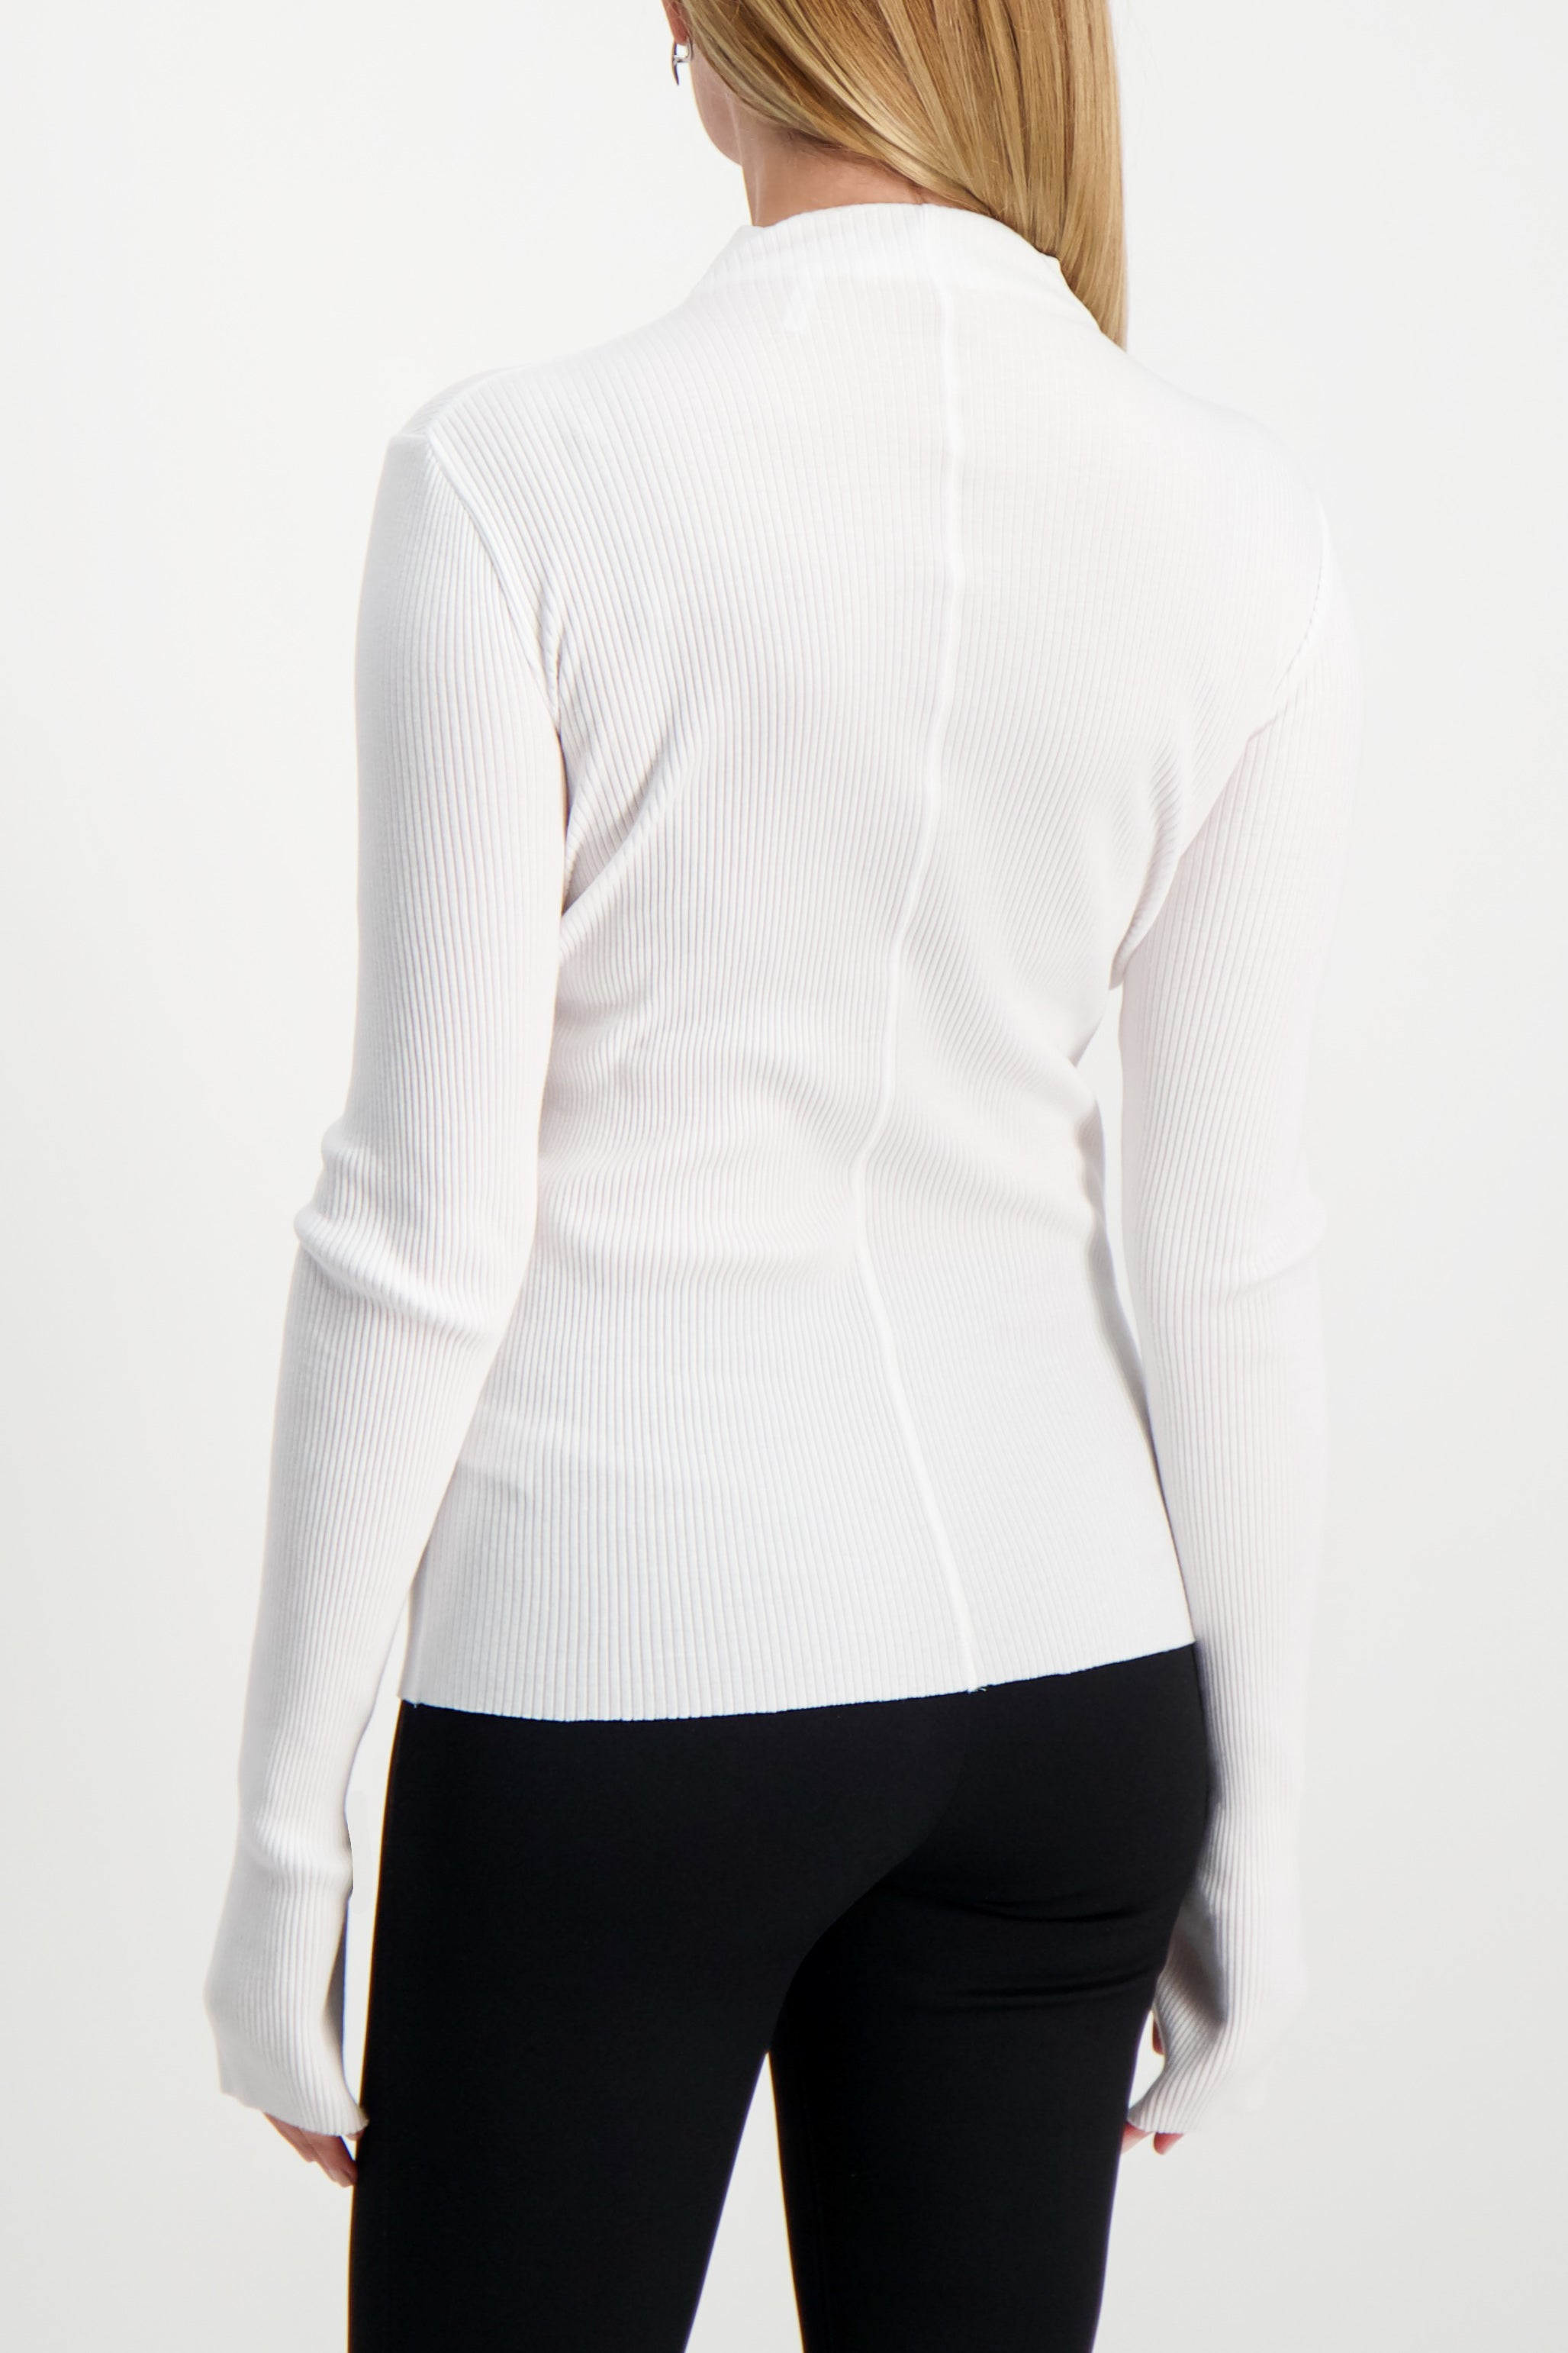 Back Crop Image Of Model Wearing Helmut Lang High Neck Rib Top White